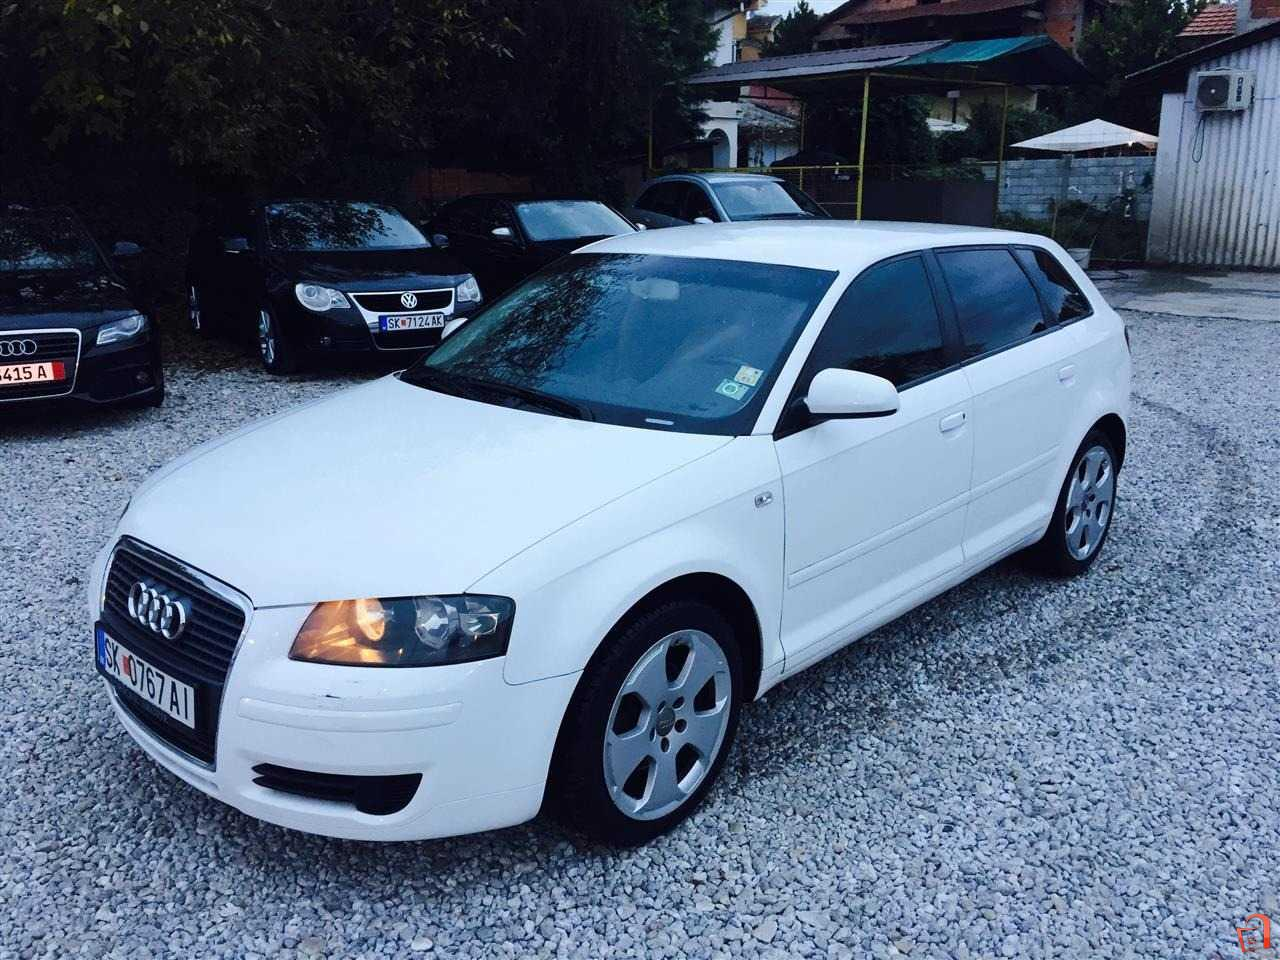 ad audi a3 2 0 tdi automatik 06 for sale skopje gjorce petrov vehicles. Black Bedroom Furniture Sets. Home Design Ideas